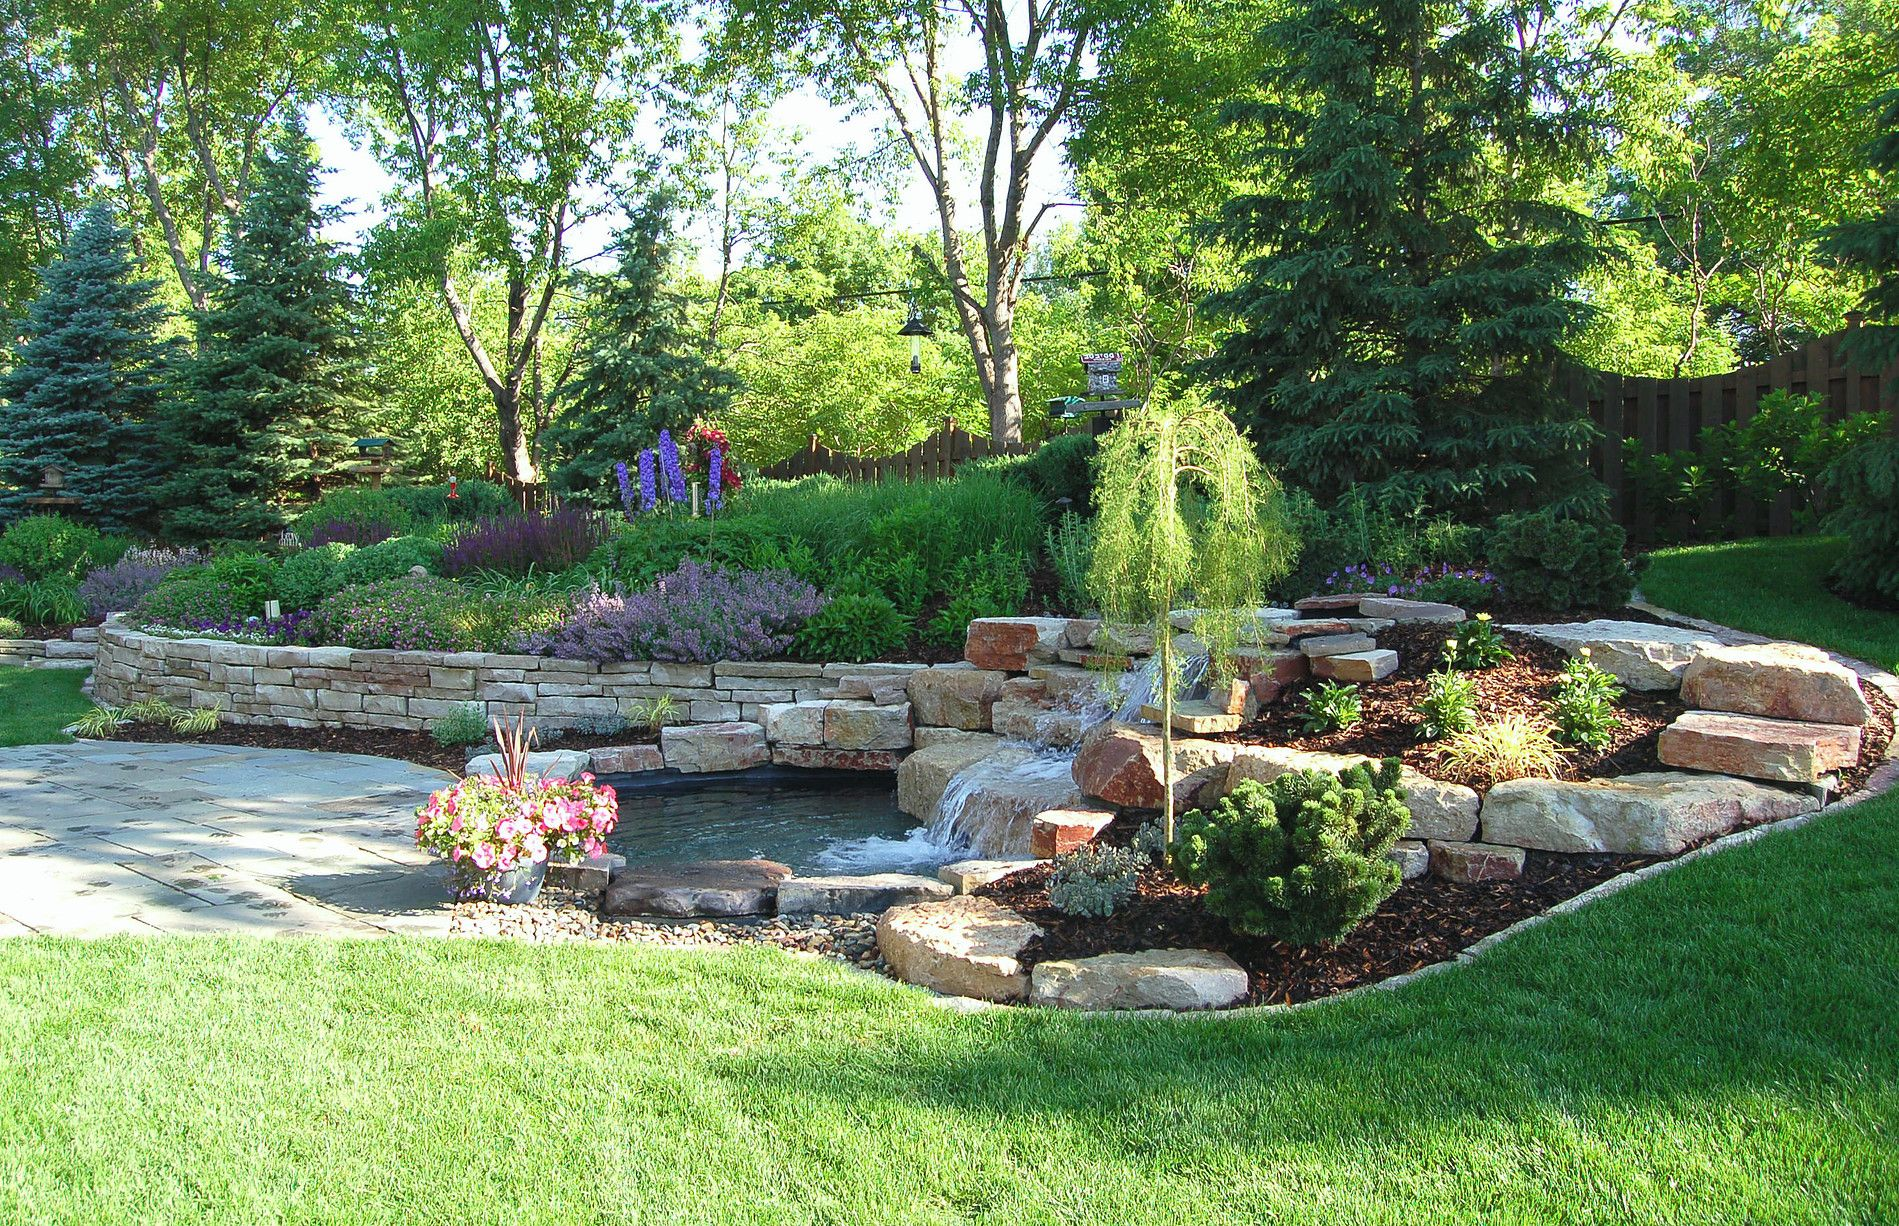 bachmans-landscaping  Garden services, Backyard water feature